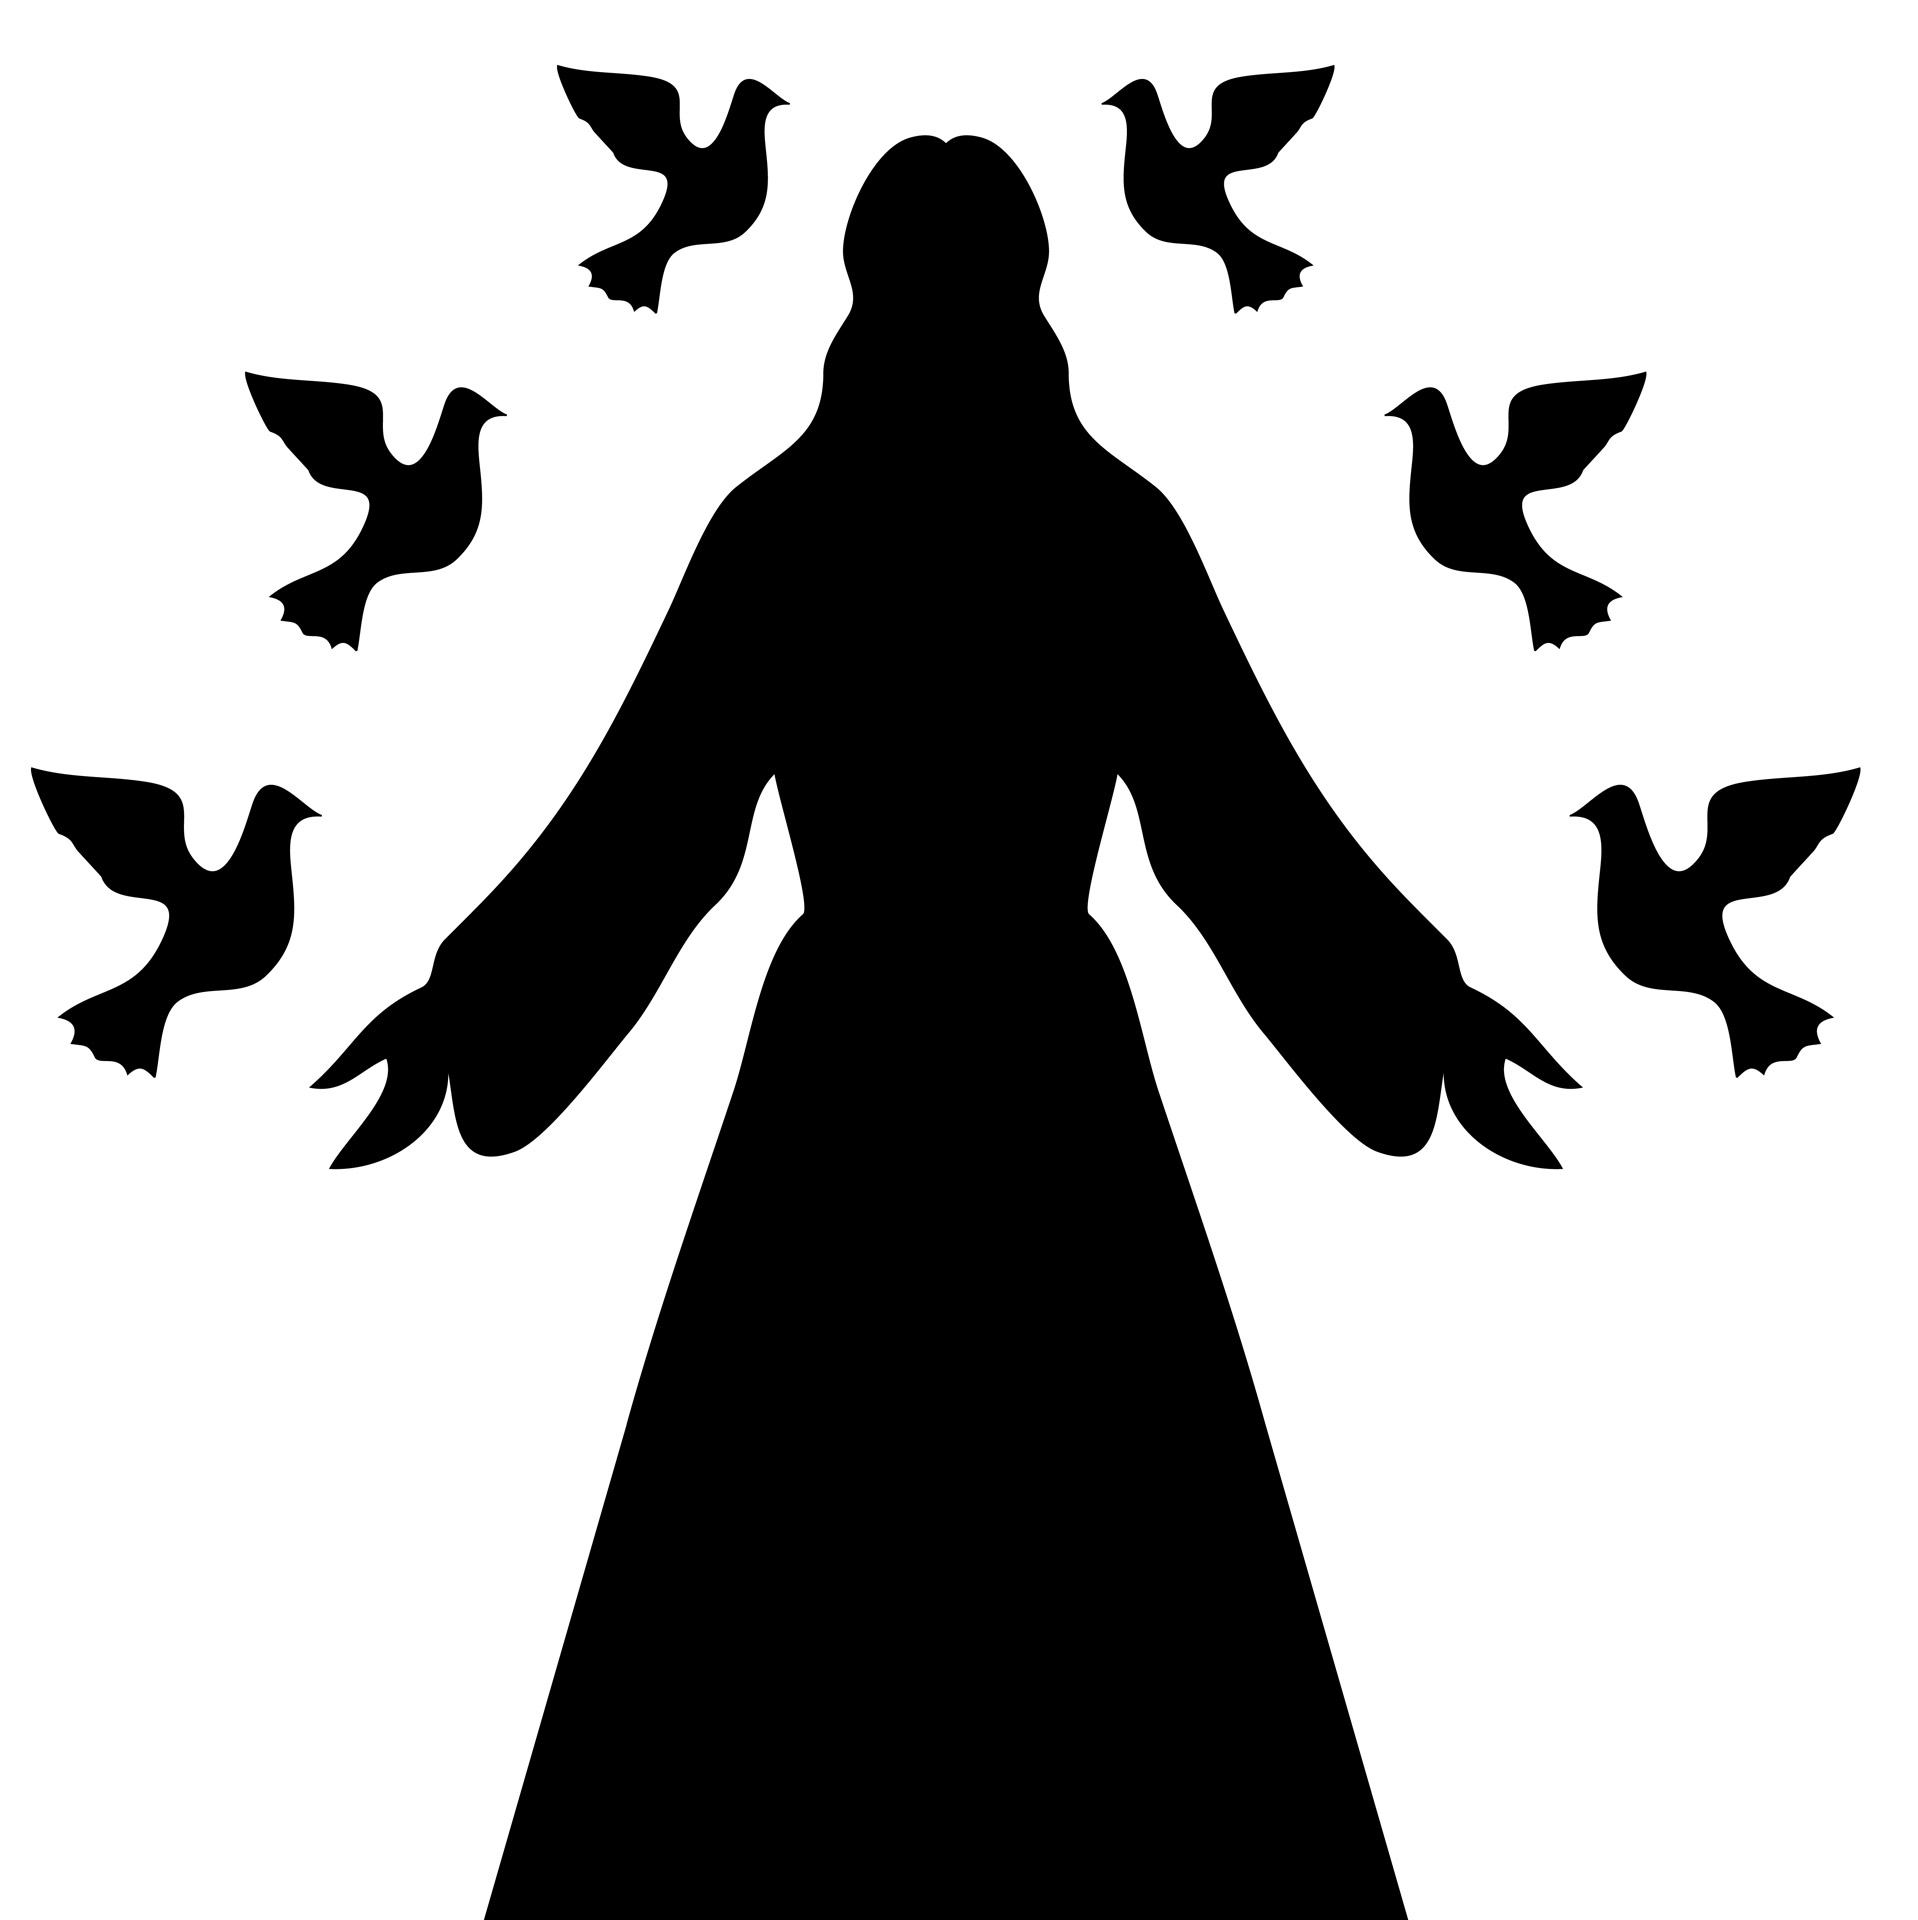 Free Jesus Christ Silhouette Images, Download Free Clip Art.